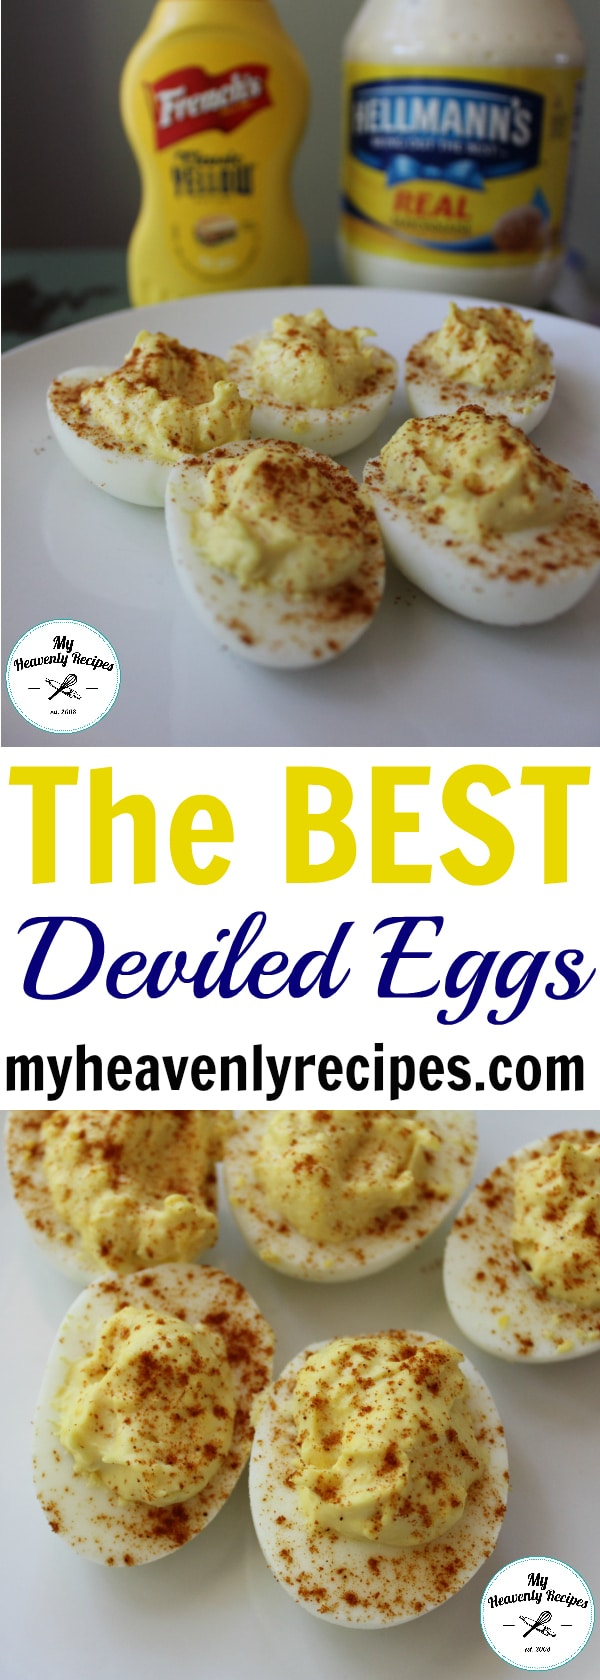 My Classic Deviled Egg Recipe is THE BEST out there! It's super simple, can be taken to your next party and won't break the bank. Not to mention, there are hundreds of variations that can be added to this classic recipe! #deviledeggs #sides #appetizer #party #myheavenlyrecipes